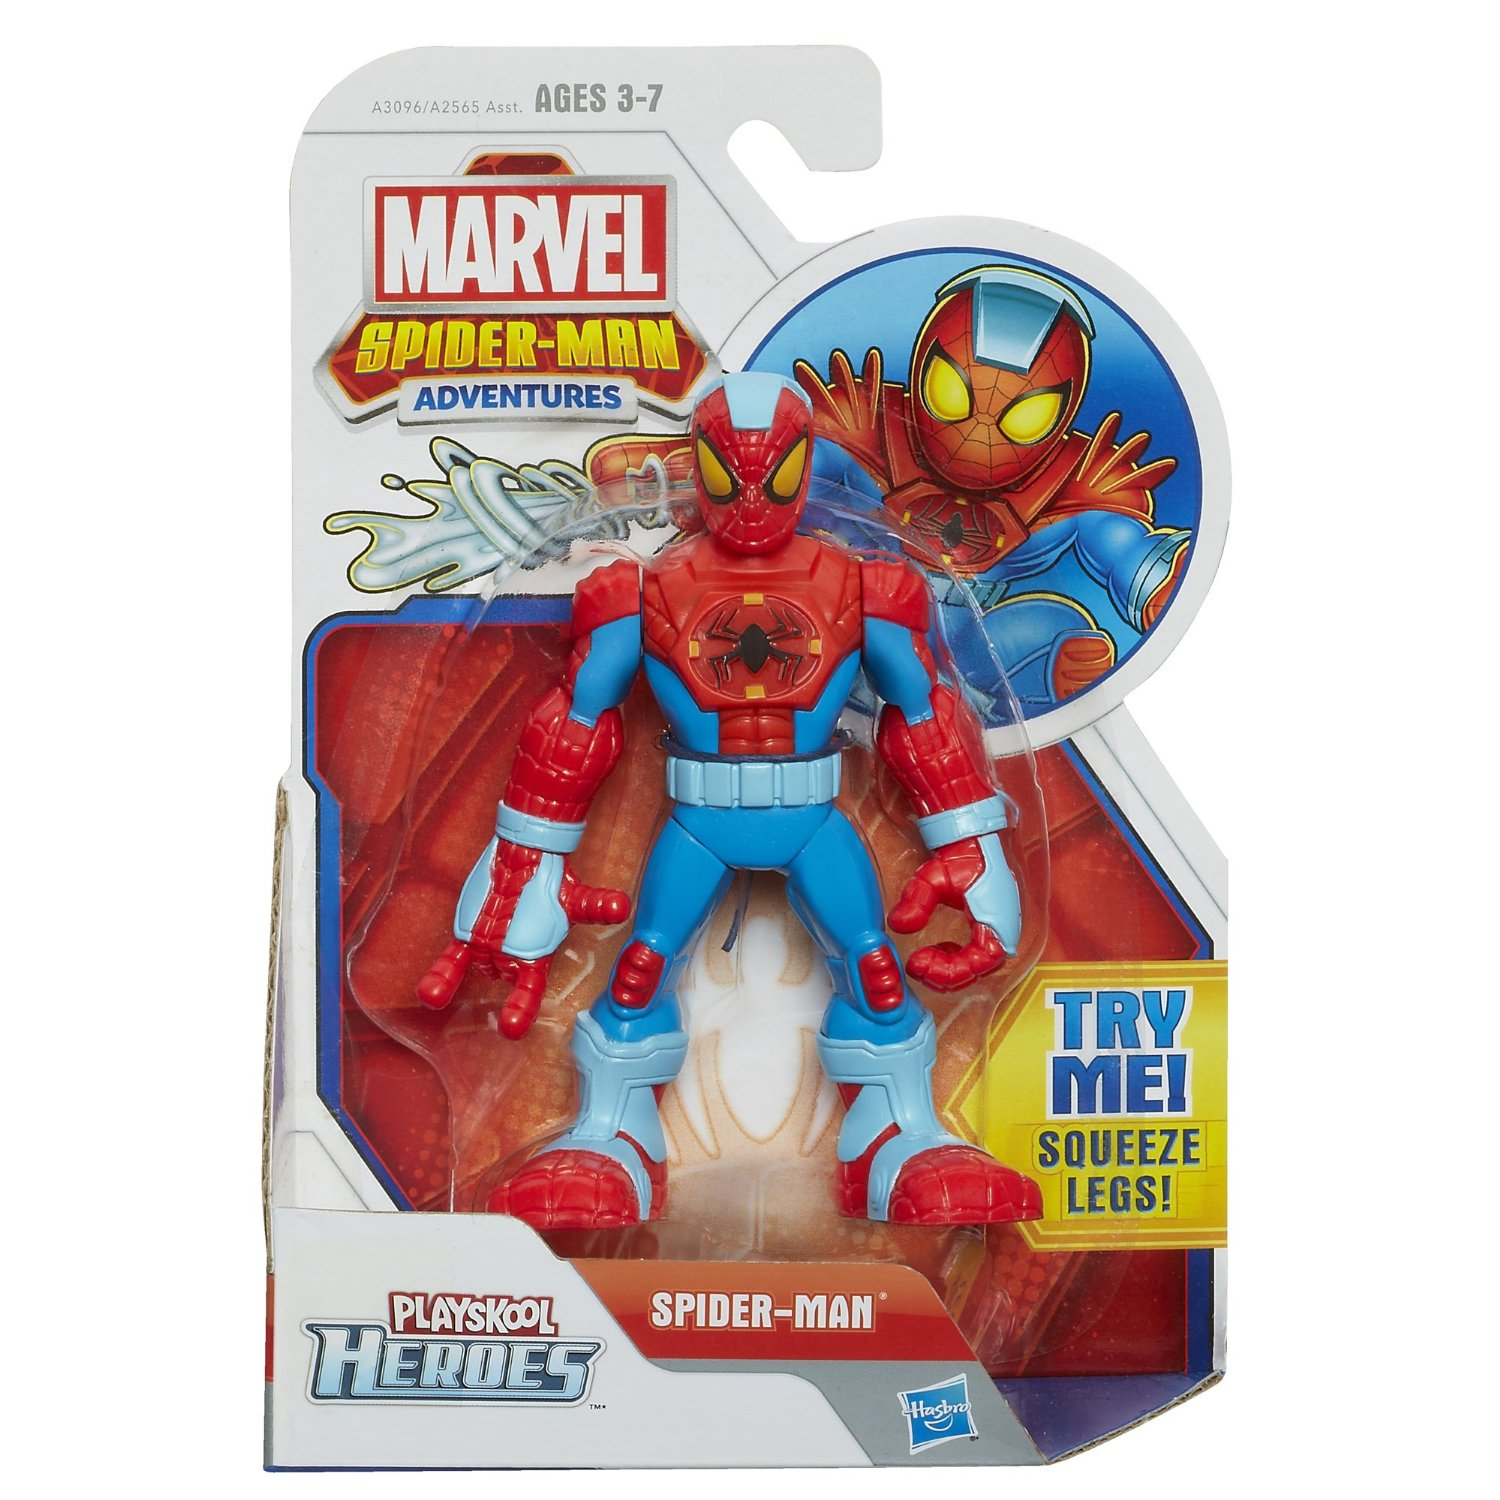 The Coolest Spiderman Toys You Can Get for Your Children